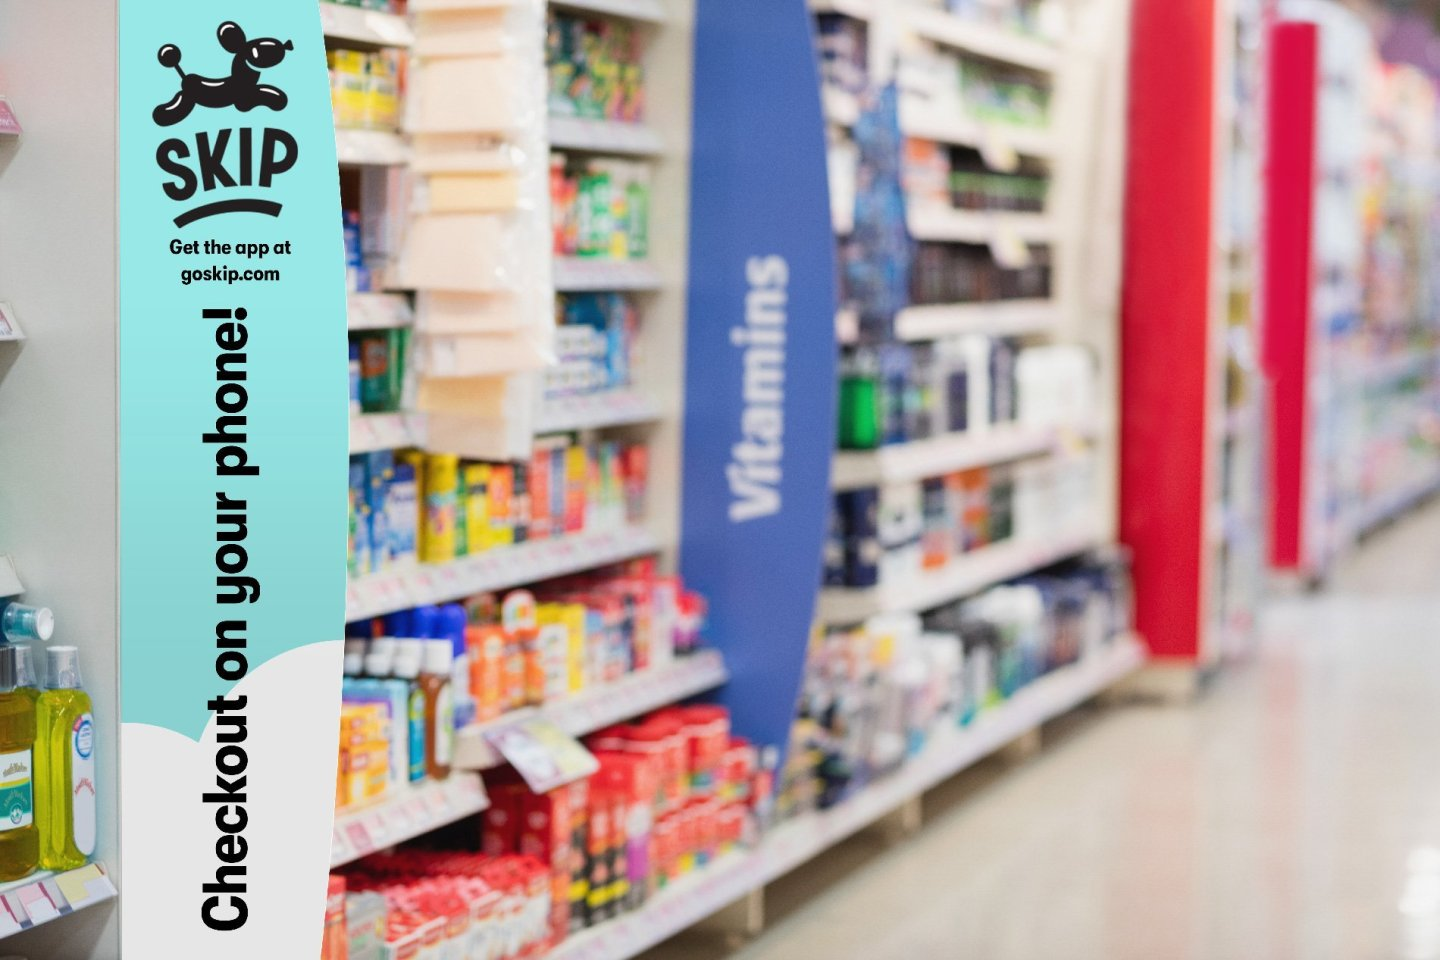 Skip checkout in store aisle signage - by Hoodzpah branding agency